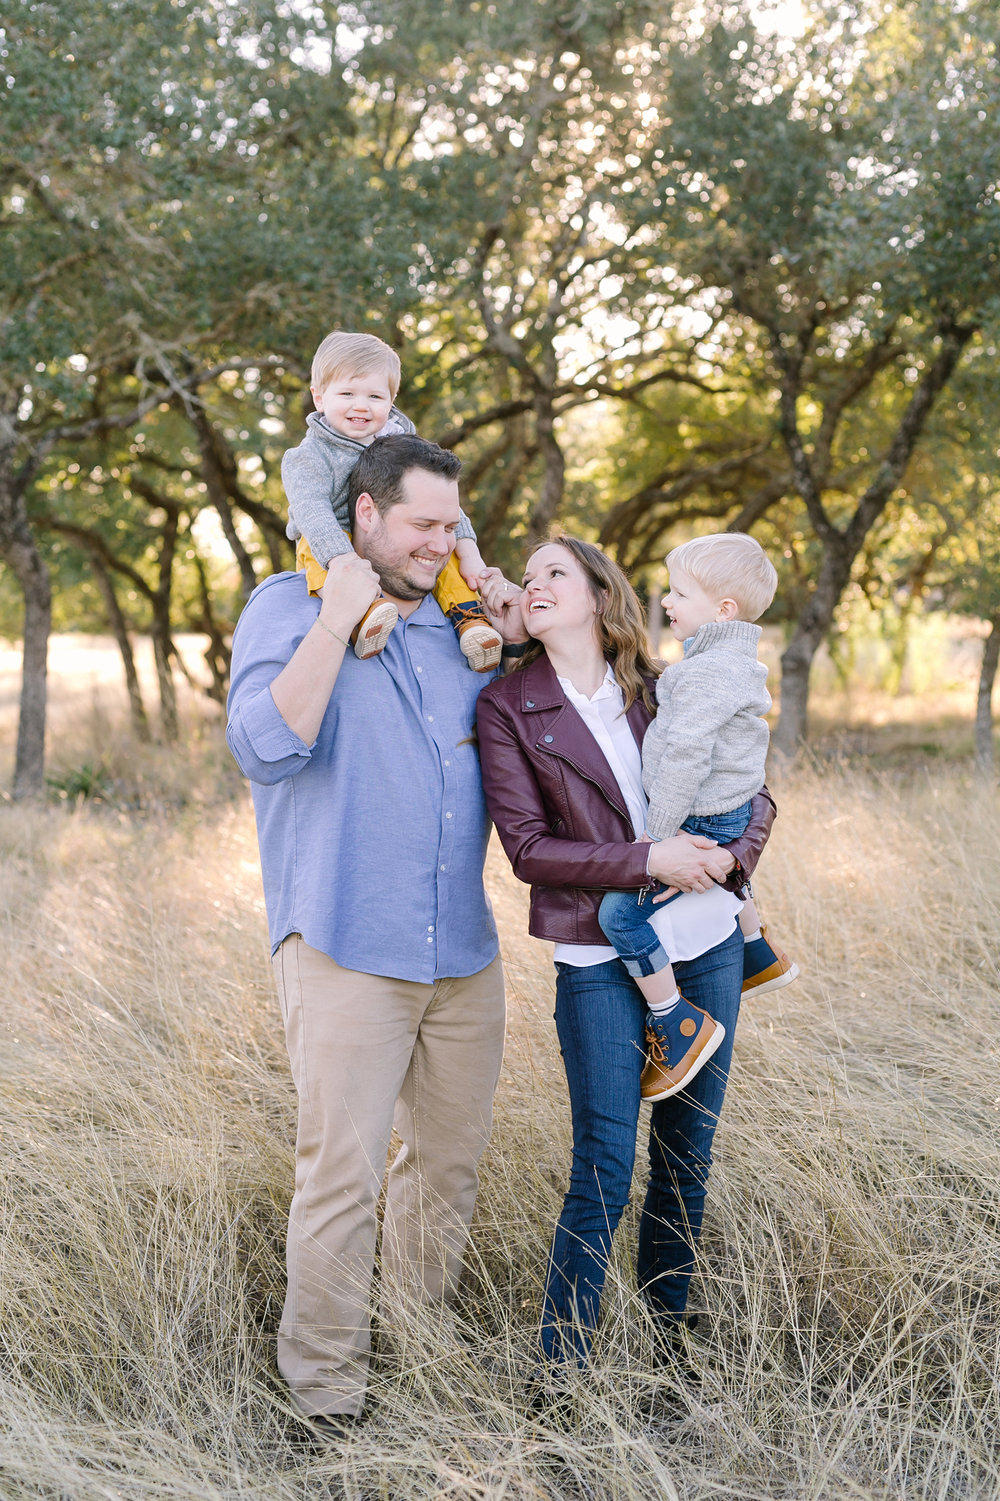 Austin_TX_Family_Photographer_KBP084.jpg